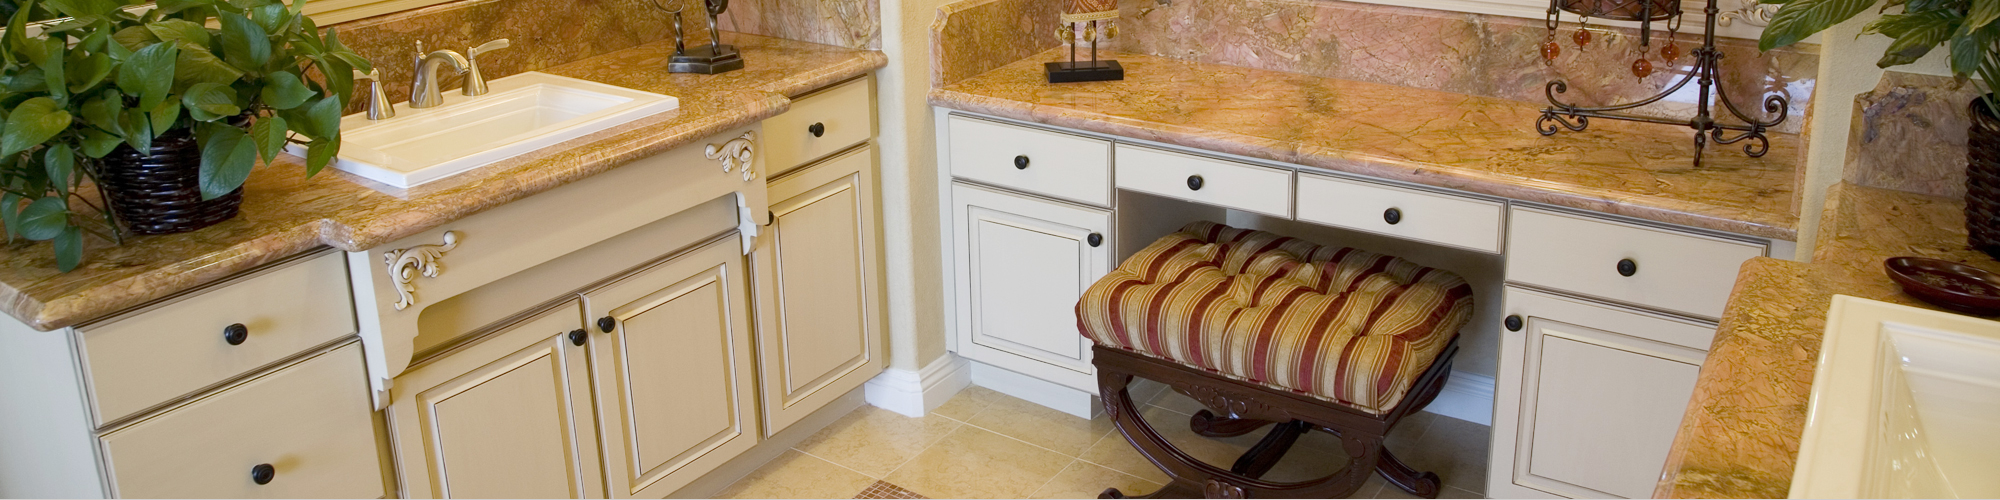 bathroom cabinets | carrollton, tx